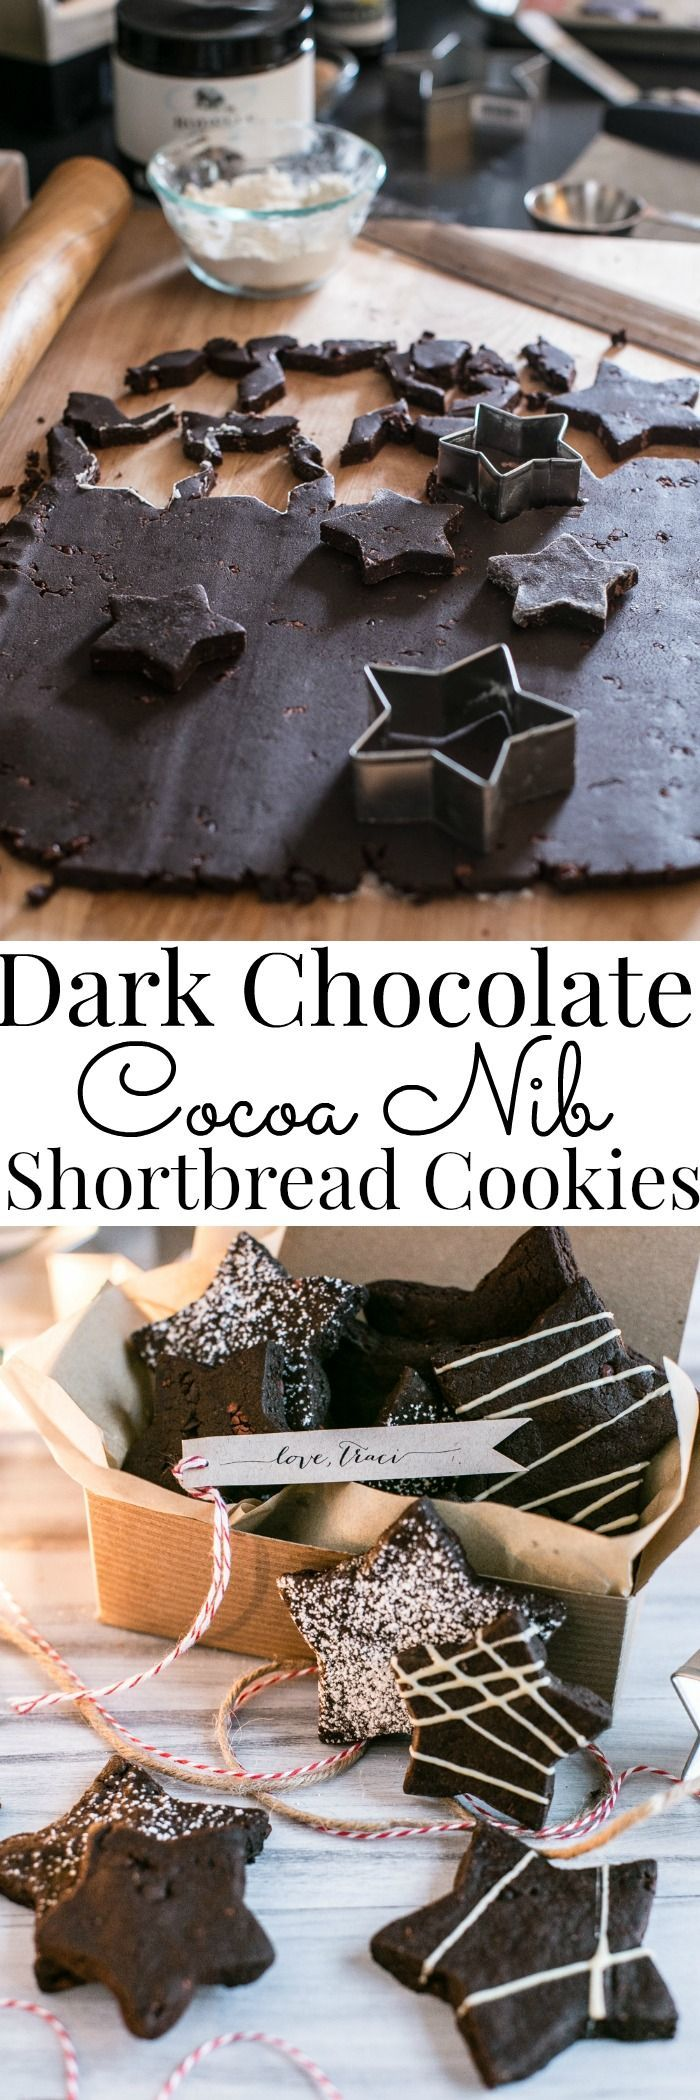 Fun and easy to make, these rich chocolatey cookies make gorgeous and delicious gifts! | Dark Chocolate Cocoa Nib Shortbread Cookies | Homemade Gifts | Shortbread Cookie Recipes